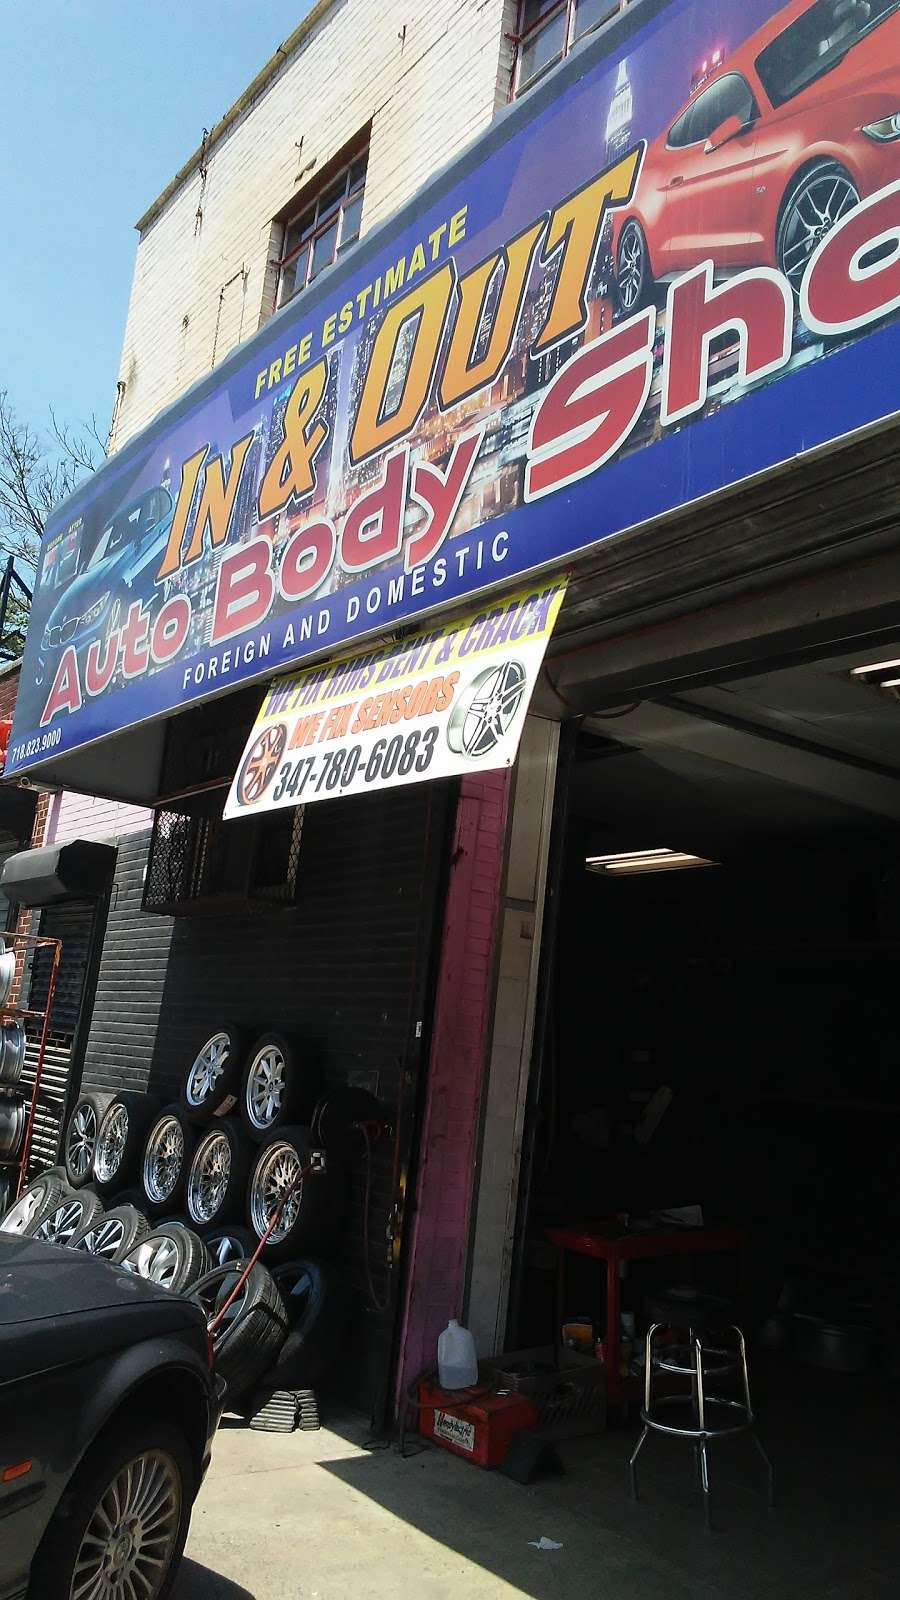 Palumbo Brothers Auto Repair - car repair  | Photo 1 of 1 | Address: 2175 E Tremont Ave, The Bronx, NY 10462, USA | Phone: (718) 792-8216